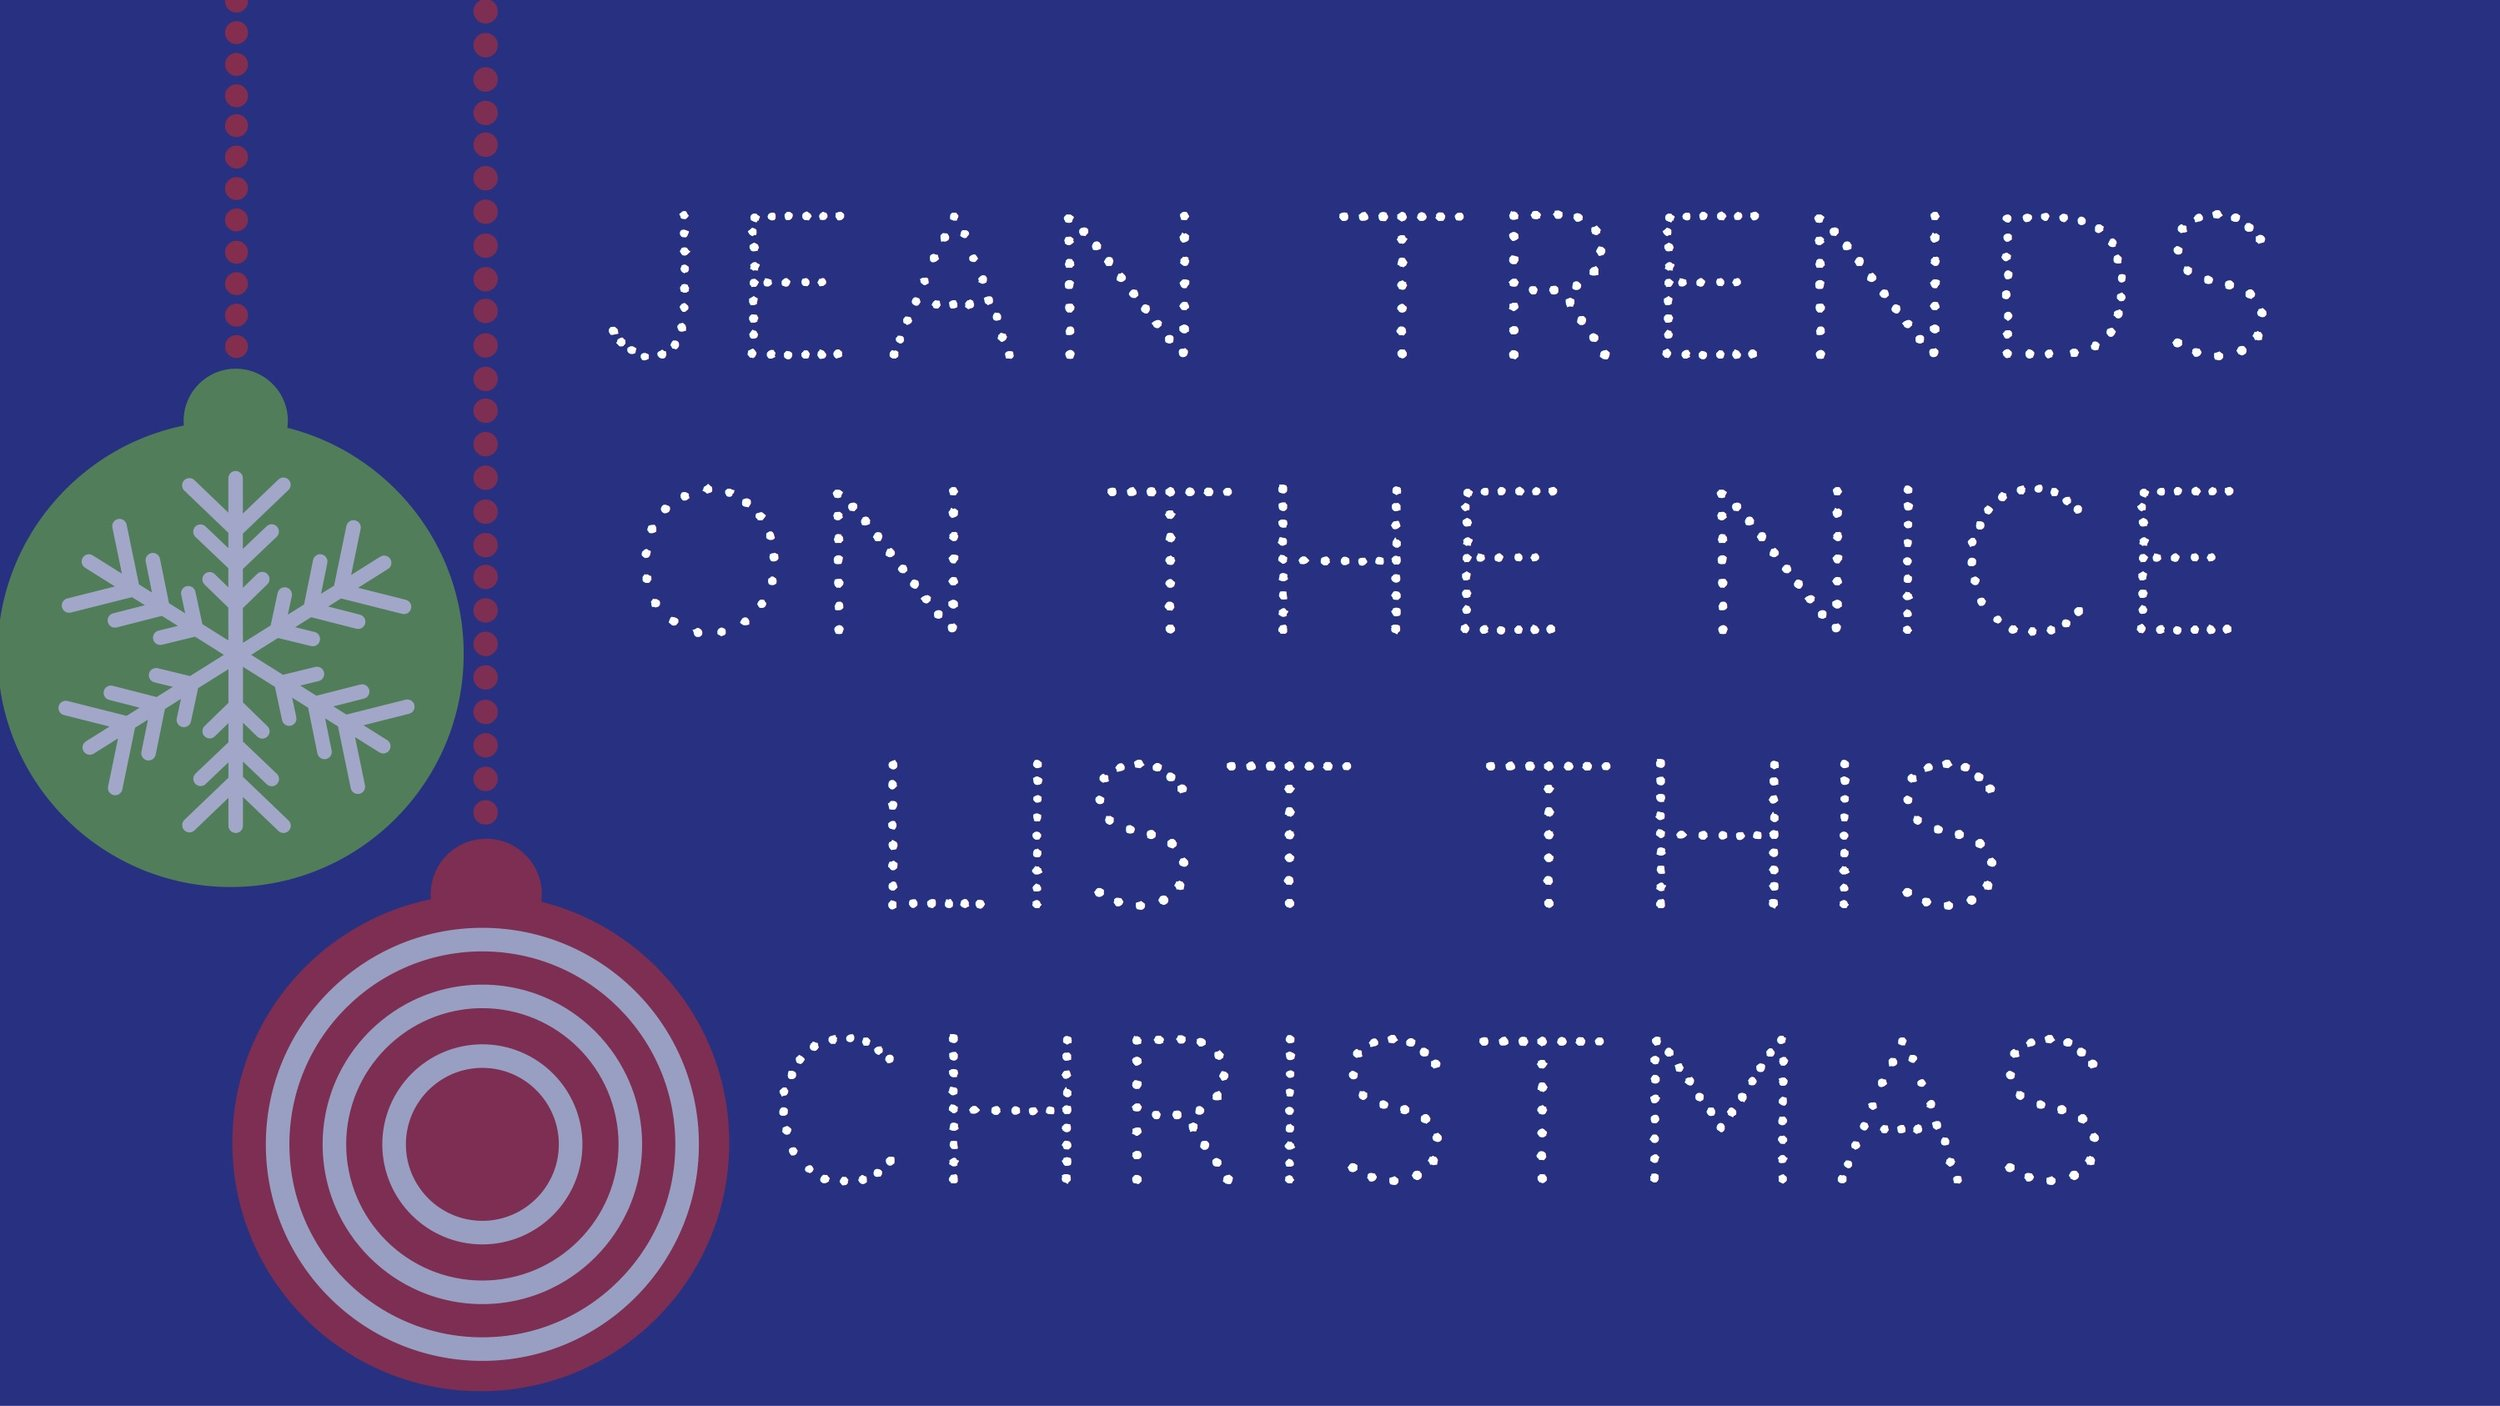 Jean_trends_on_the_nice_list_a.n._.jpg